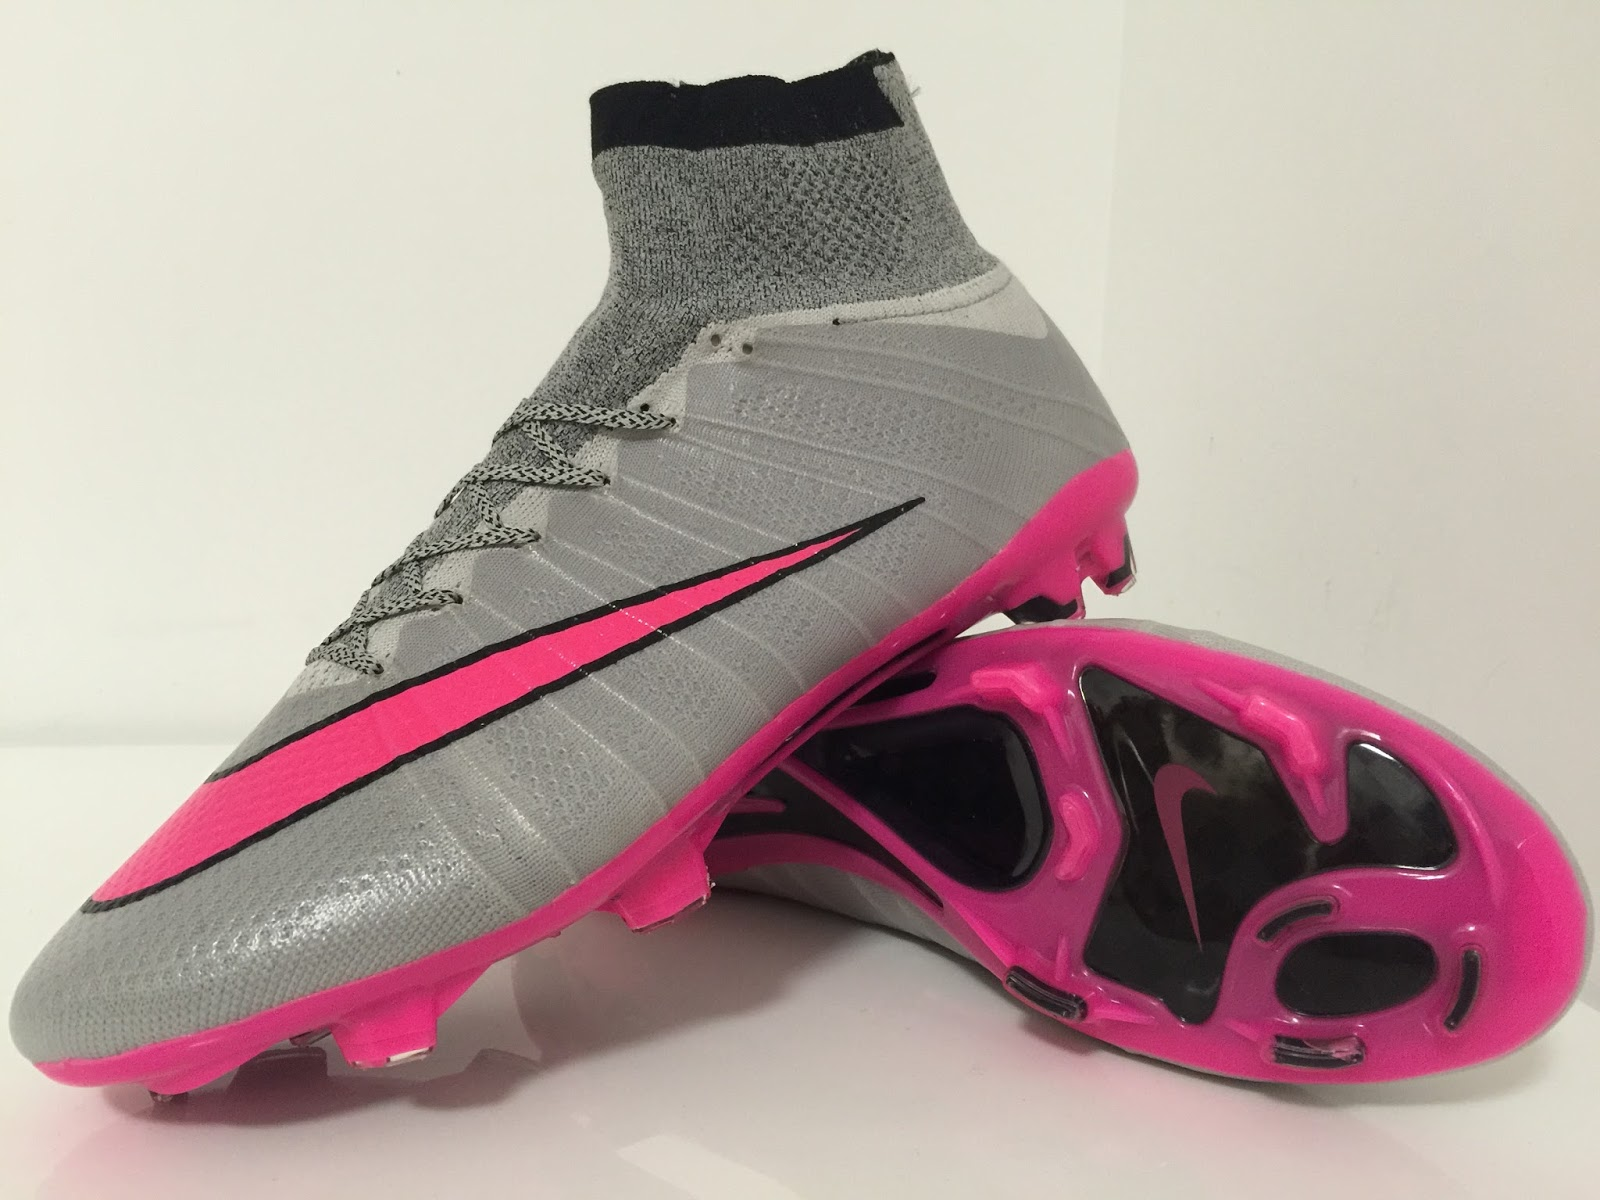 99967f5021820 ... black boots fg kids c1cfc fe9e2; norway the new wolf grey nike mercurial  superfly 2015 16 boots combines the understated main color